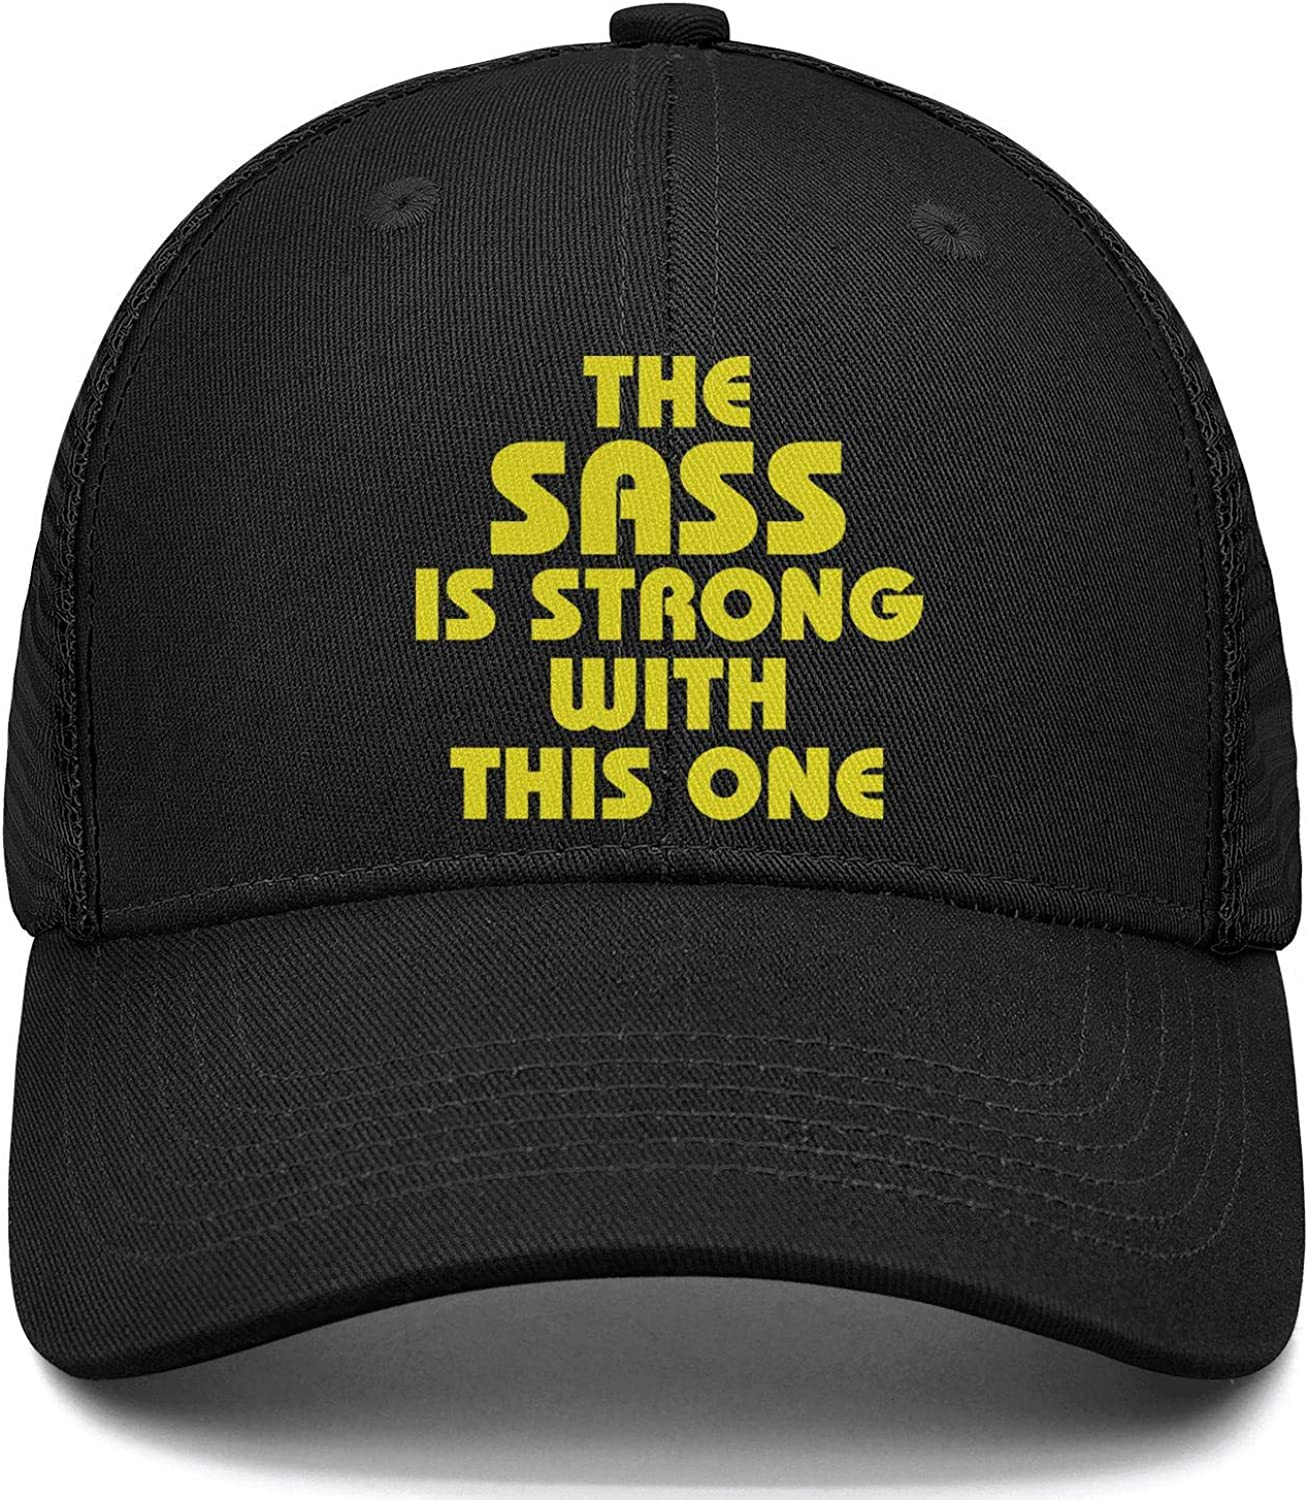 Thug Life Drop The T and Get Over Here Womens Mens Mesh Vintage Cap Adjustable Snapback Sports Hat